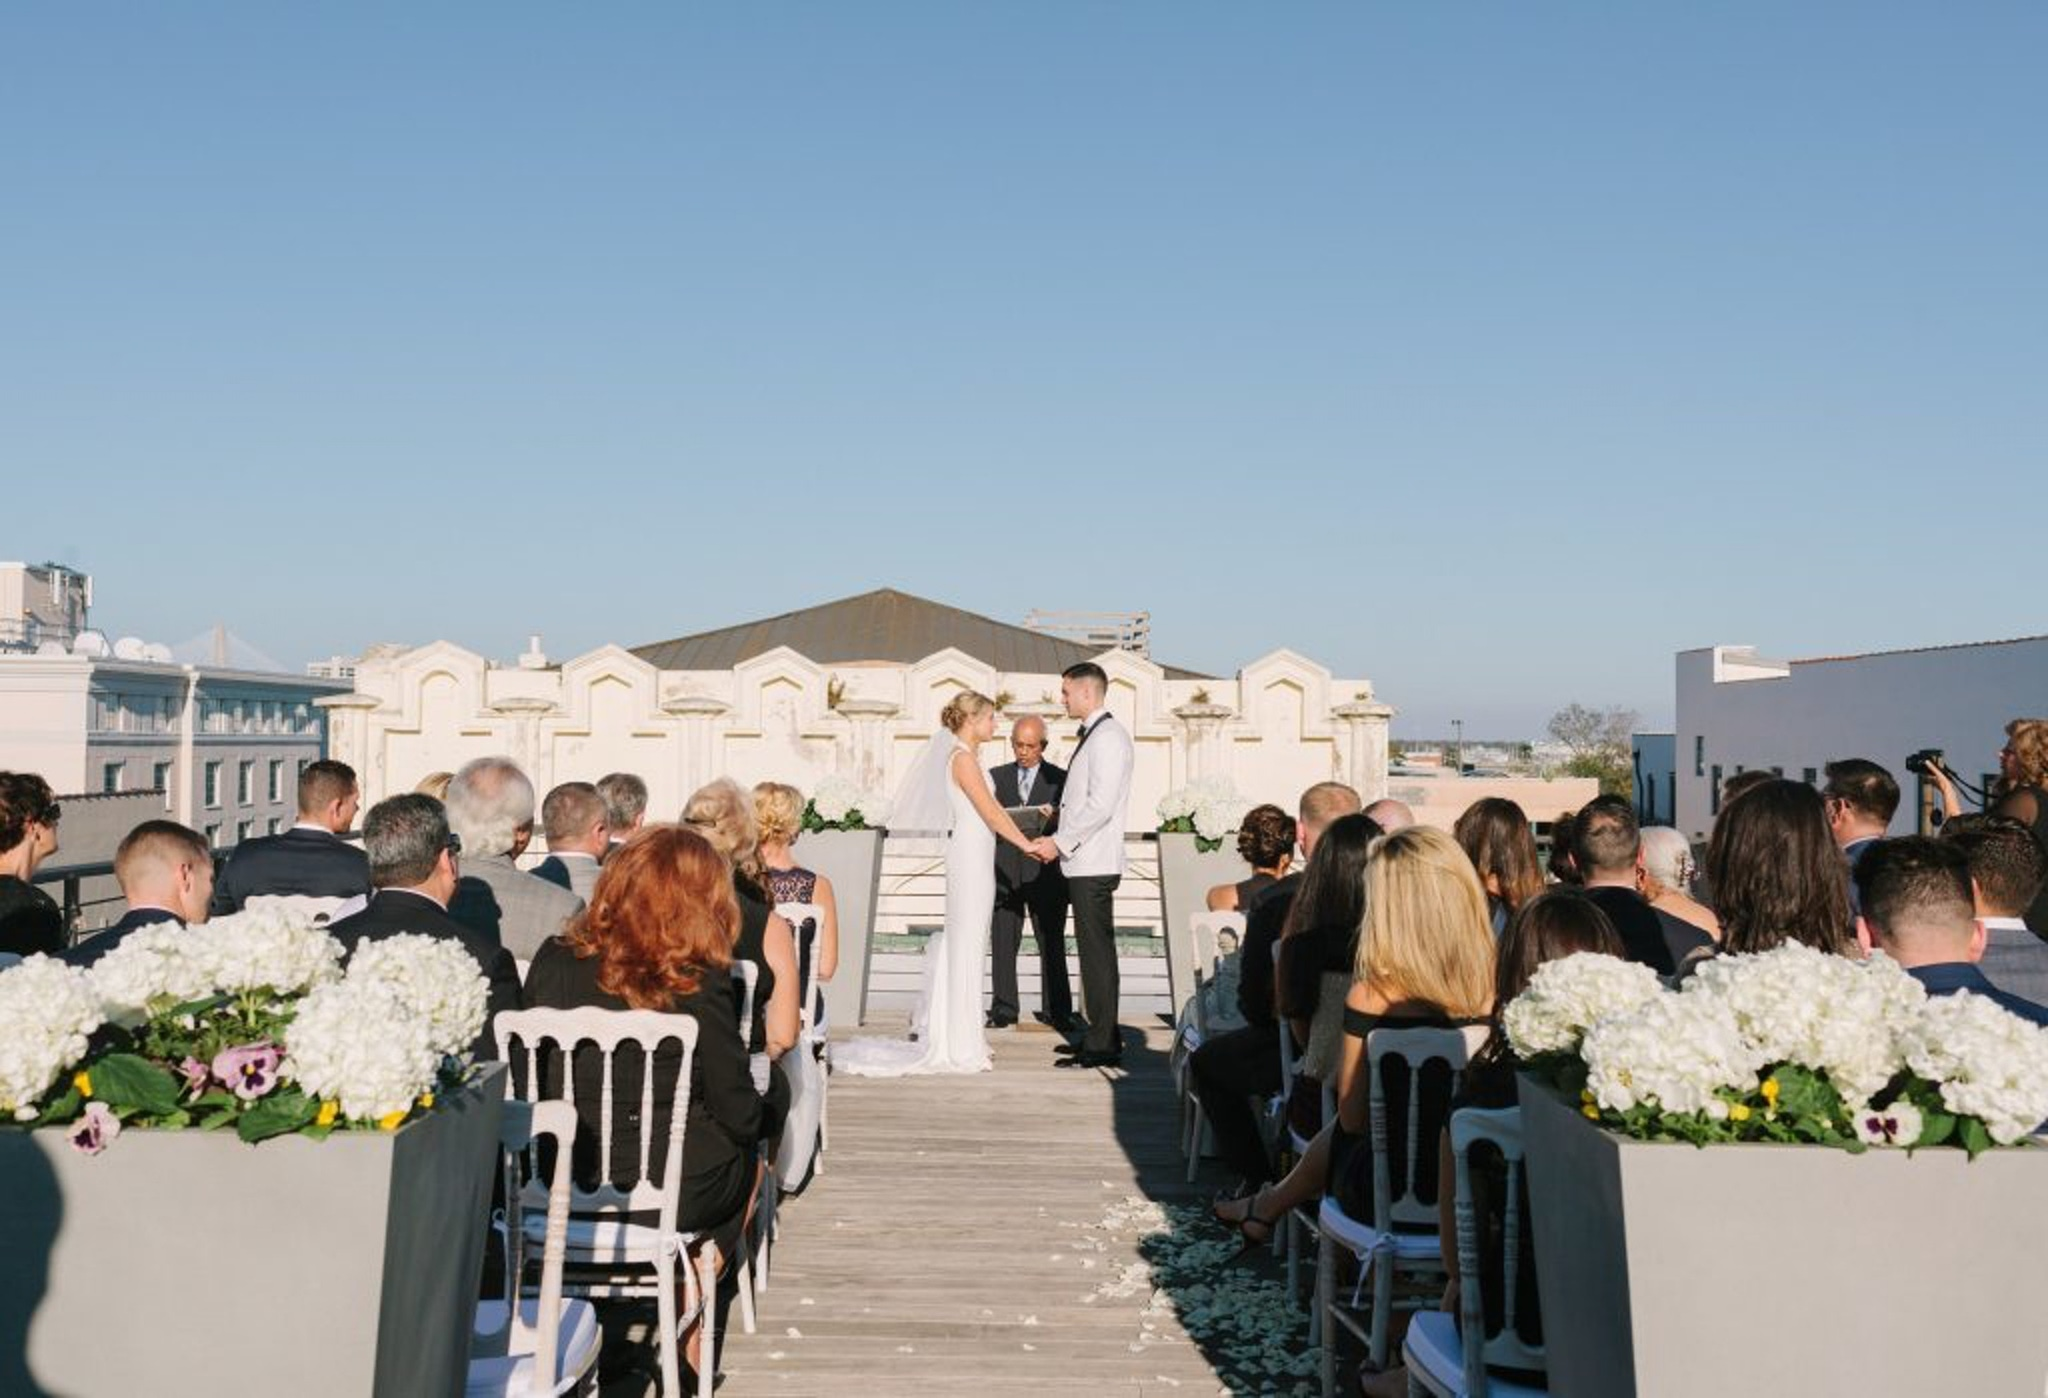 Wedding at The Restoration Hotel with vibrant sky